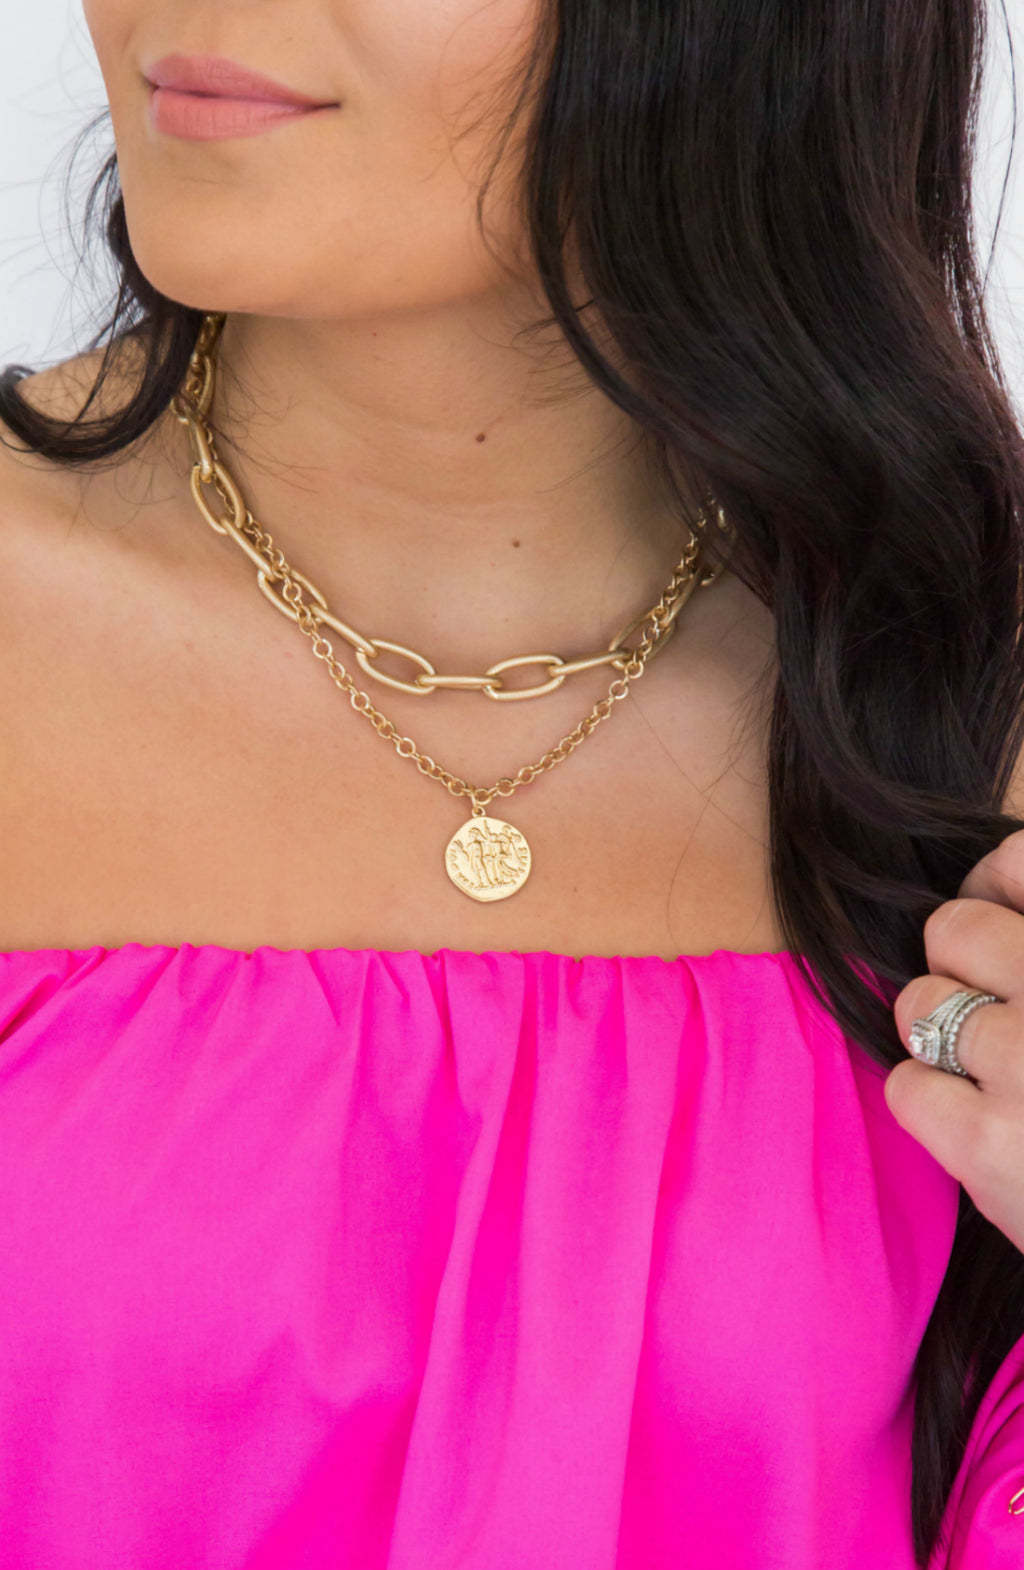 Linked By Love Gold Chain Coin Necklace